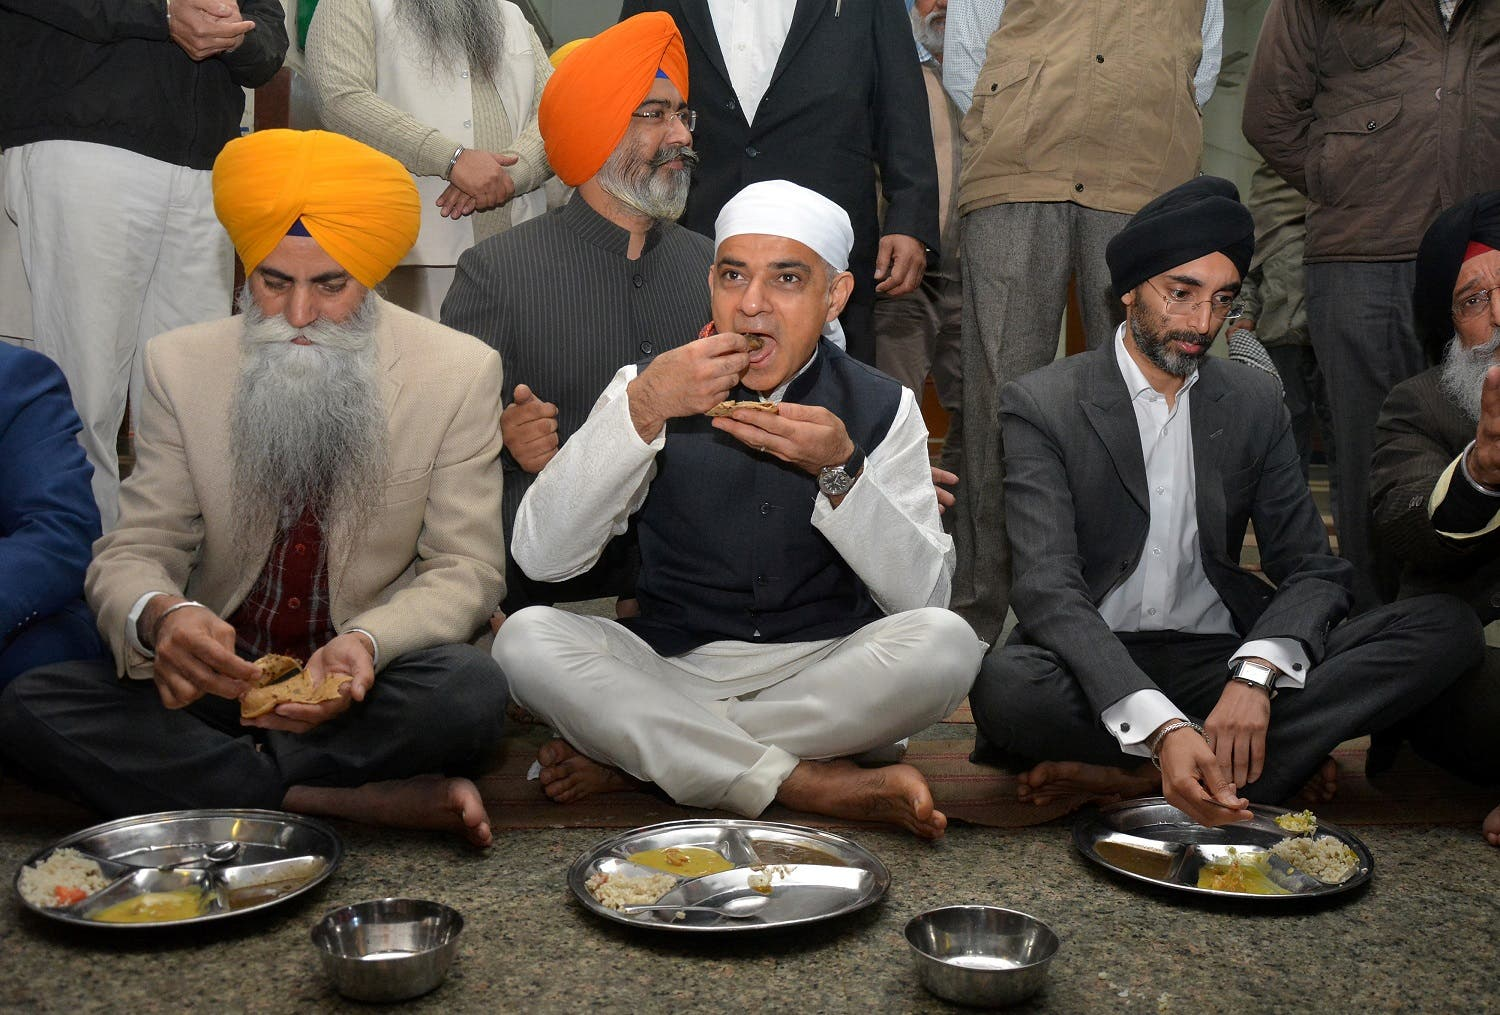 London Mayor Sadiq Khan (C) eats at a community kitchen as he visits the holy Sikh shrine of Golden temple in Amritsar, India. (Reuters)